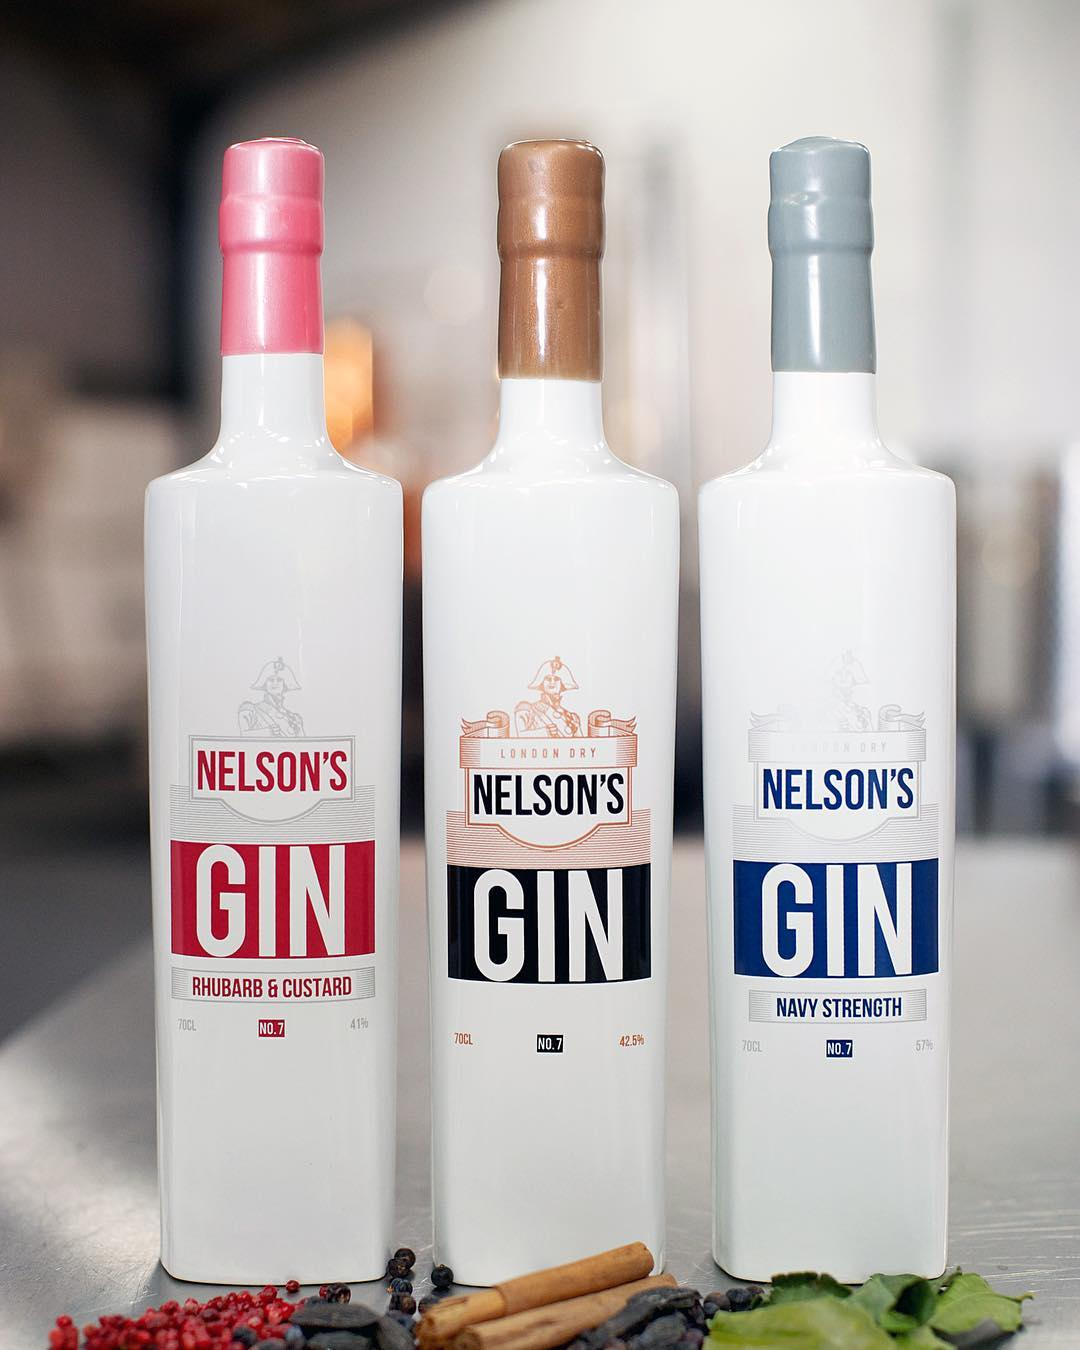 Nelsons craftr craft spirits gin range original rhubarb custard navy strength